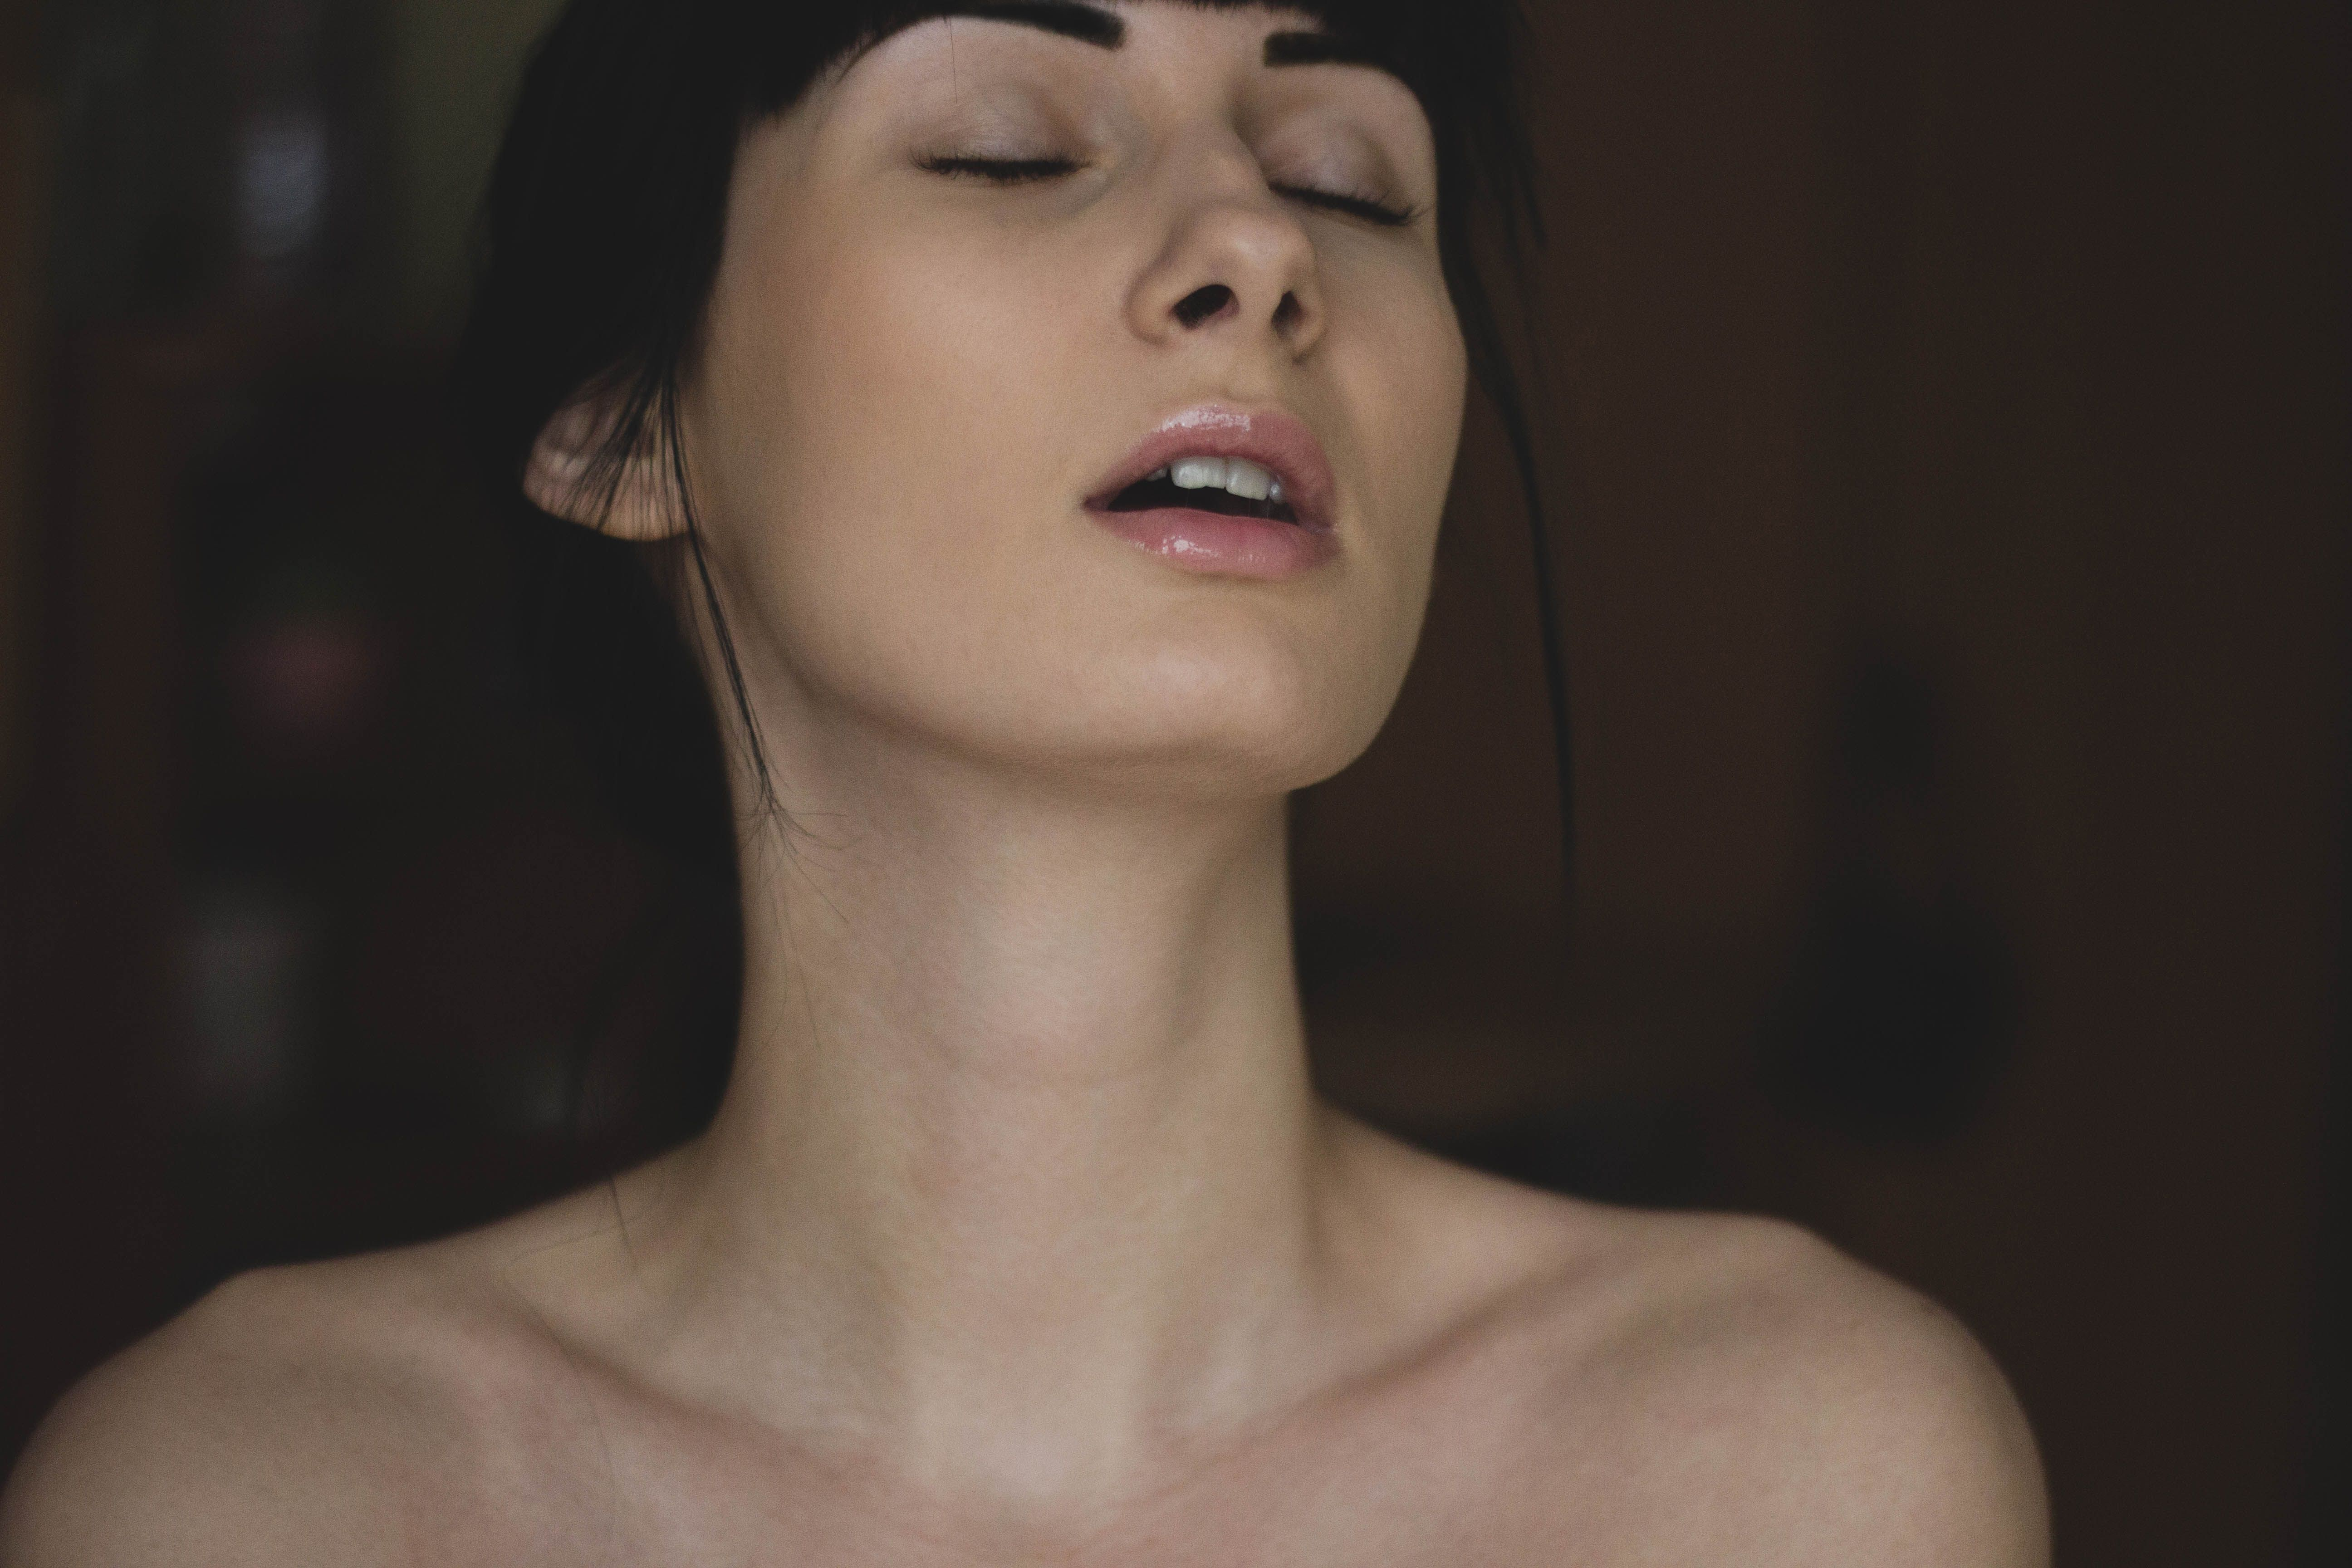 best of Sexy Images of organs girls